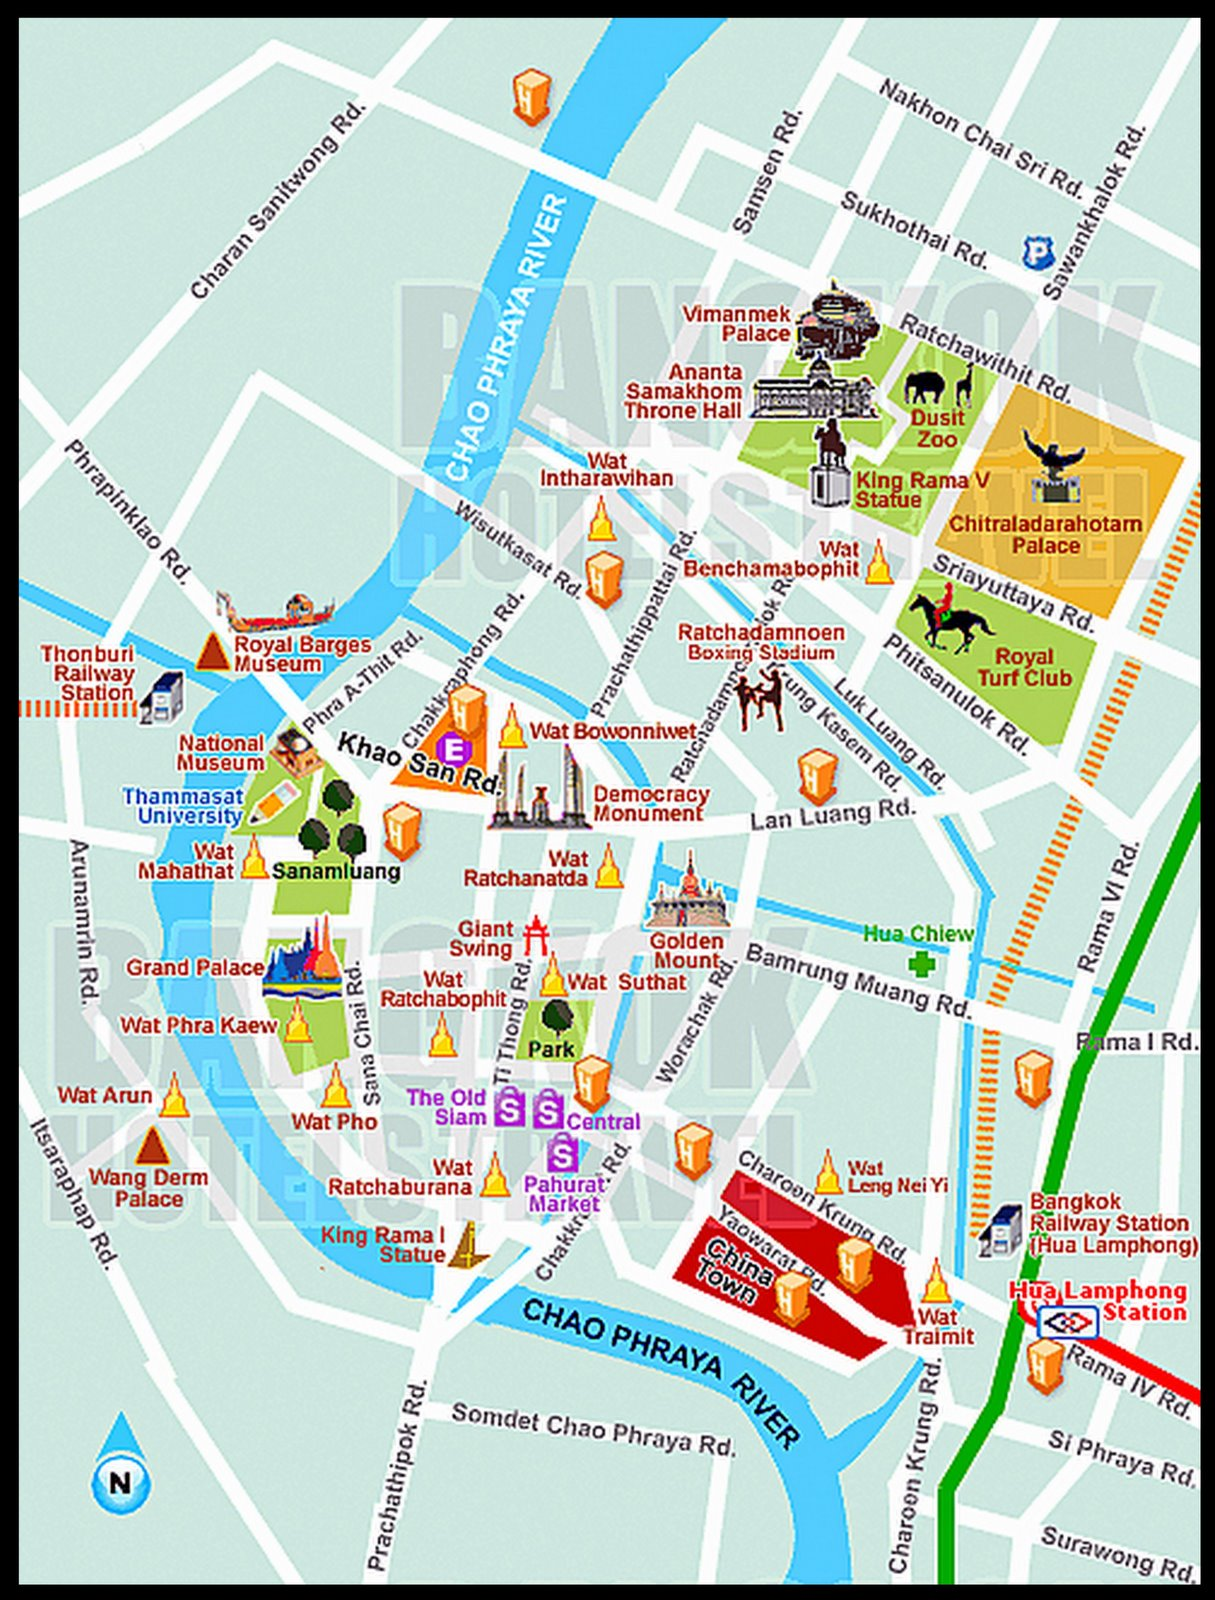 Complete Tourist Attractions Map of Bangkok Thailand – Thailand Tourist Map